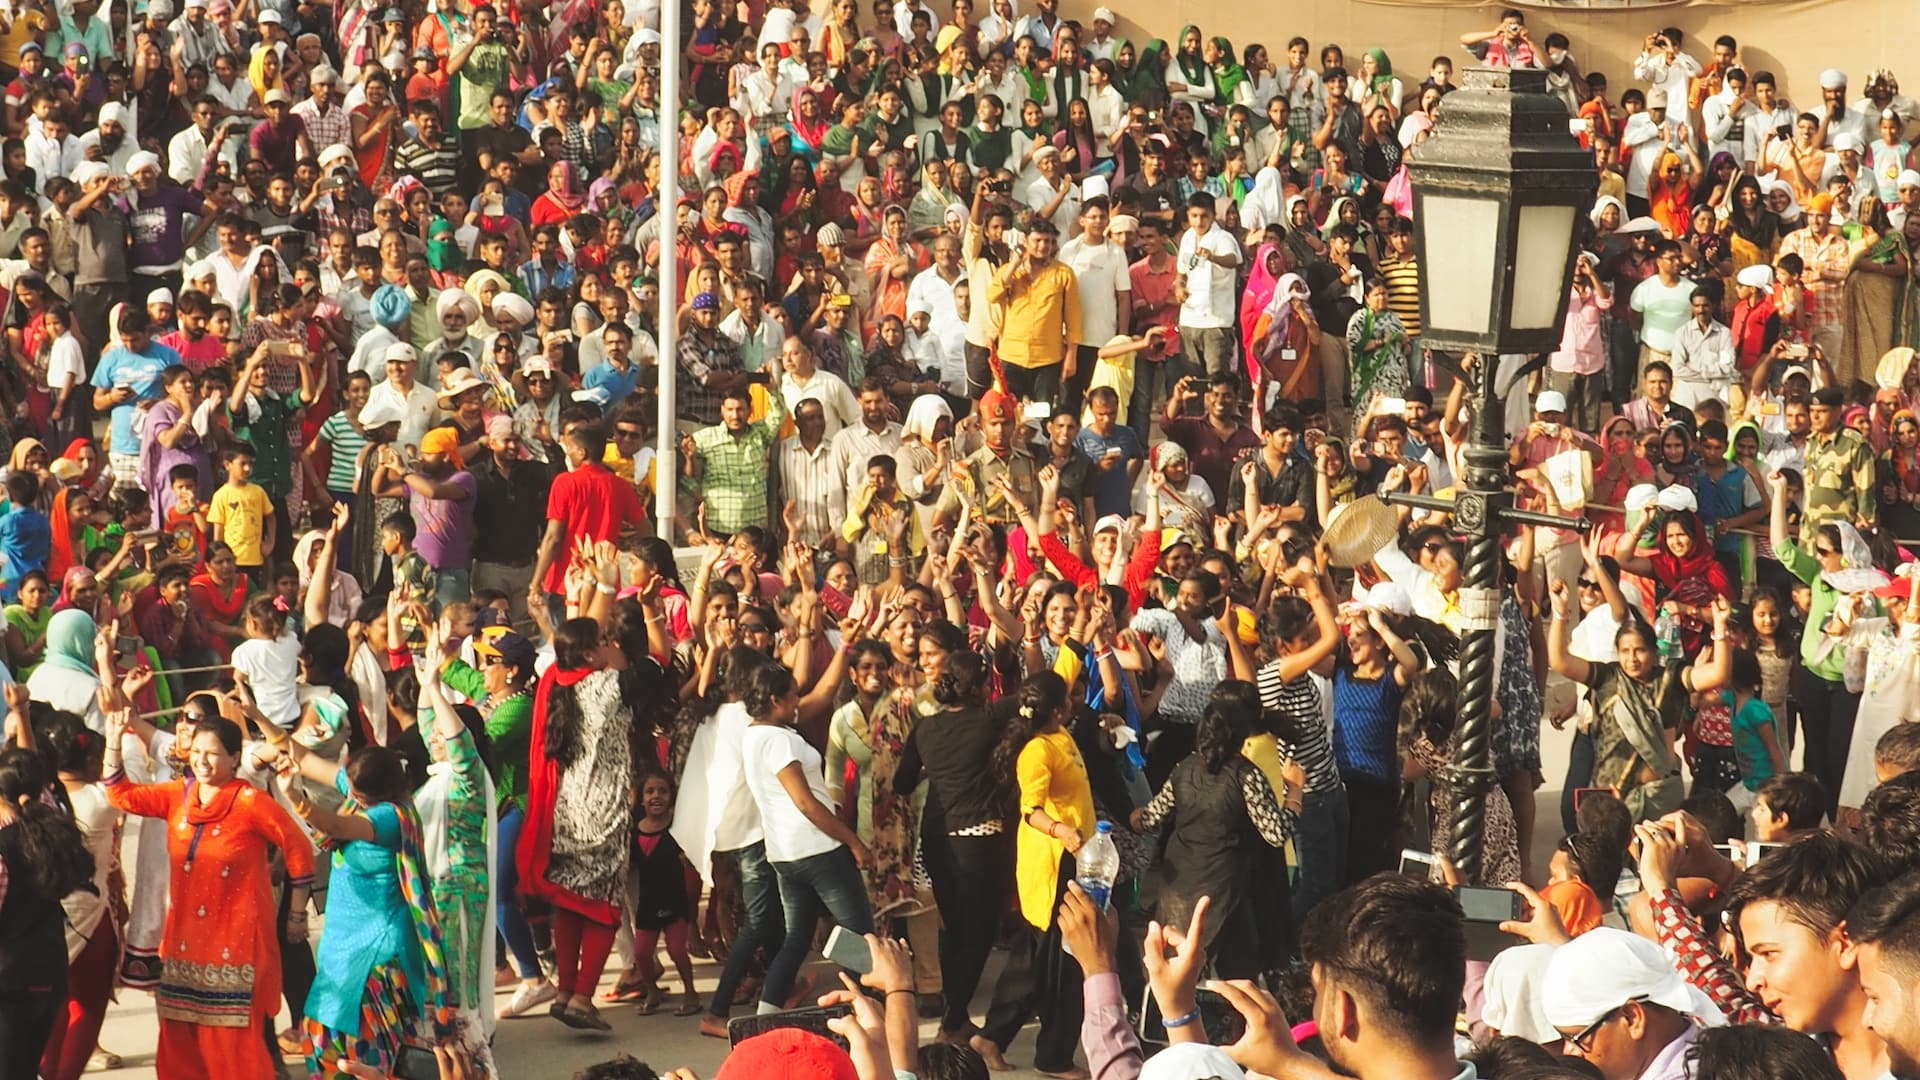 A crowd of people dancing with their arms in the air